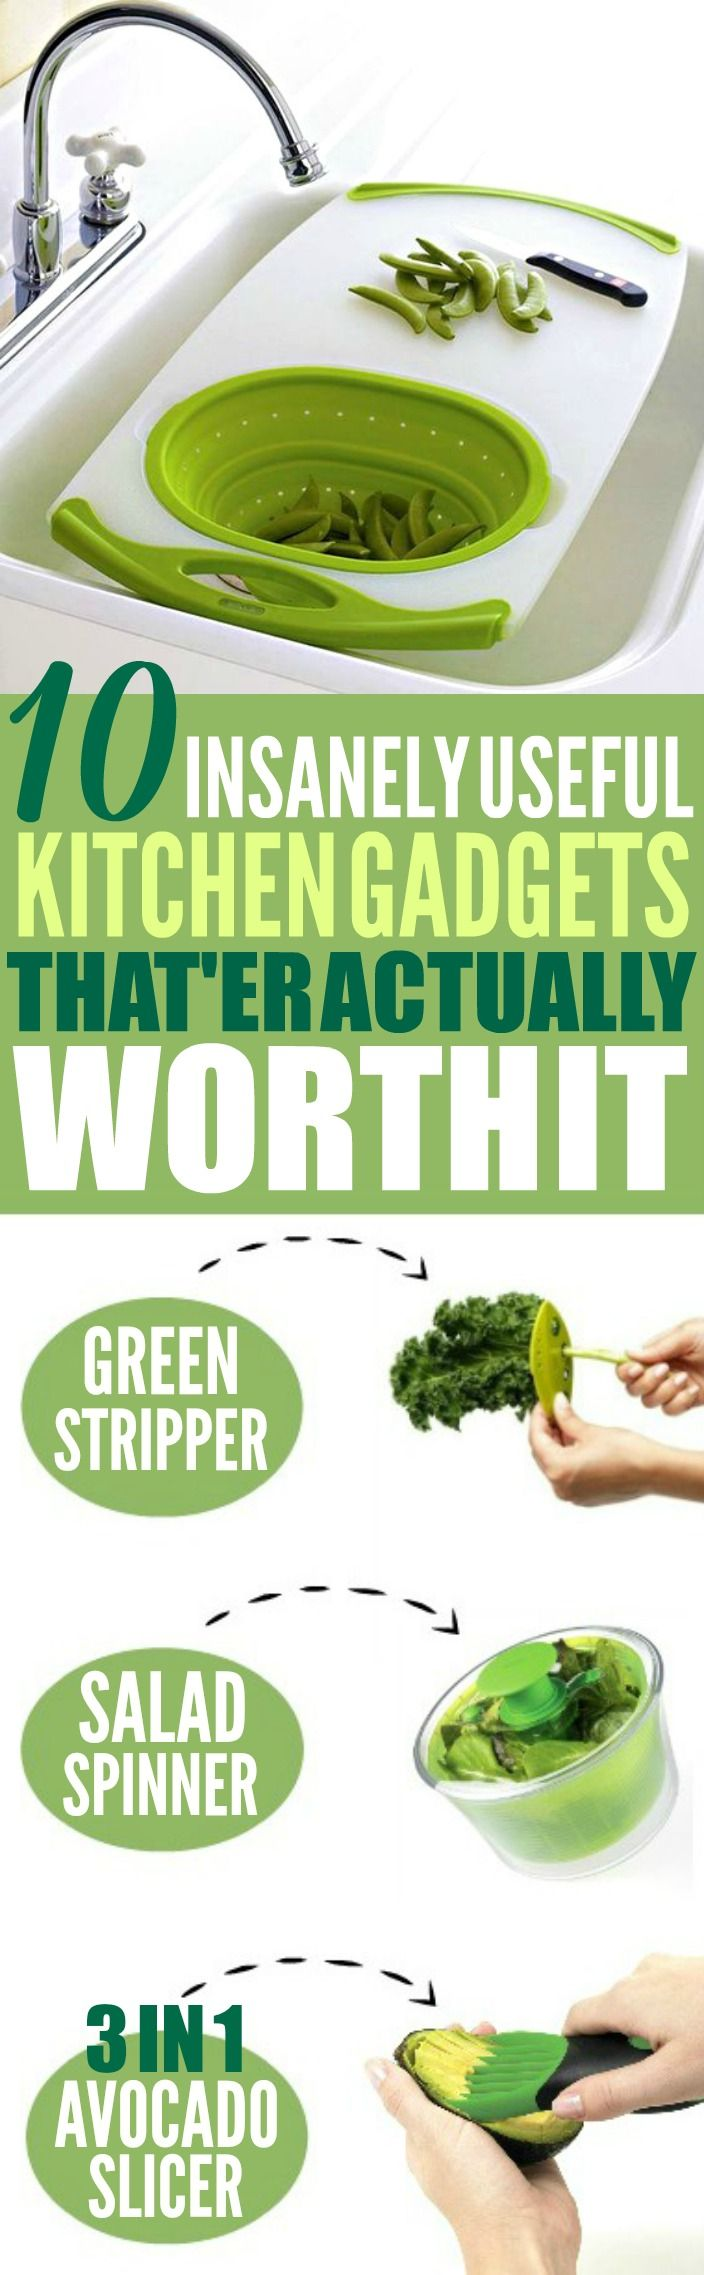 These 10 insanely useful kitchen gadgets and gizmos are THE BEST! I'm so glad I found these AWESOME tips! Now I have some great kitchen gadgets to make my cooking easier! Definitely pinning!